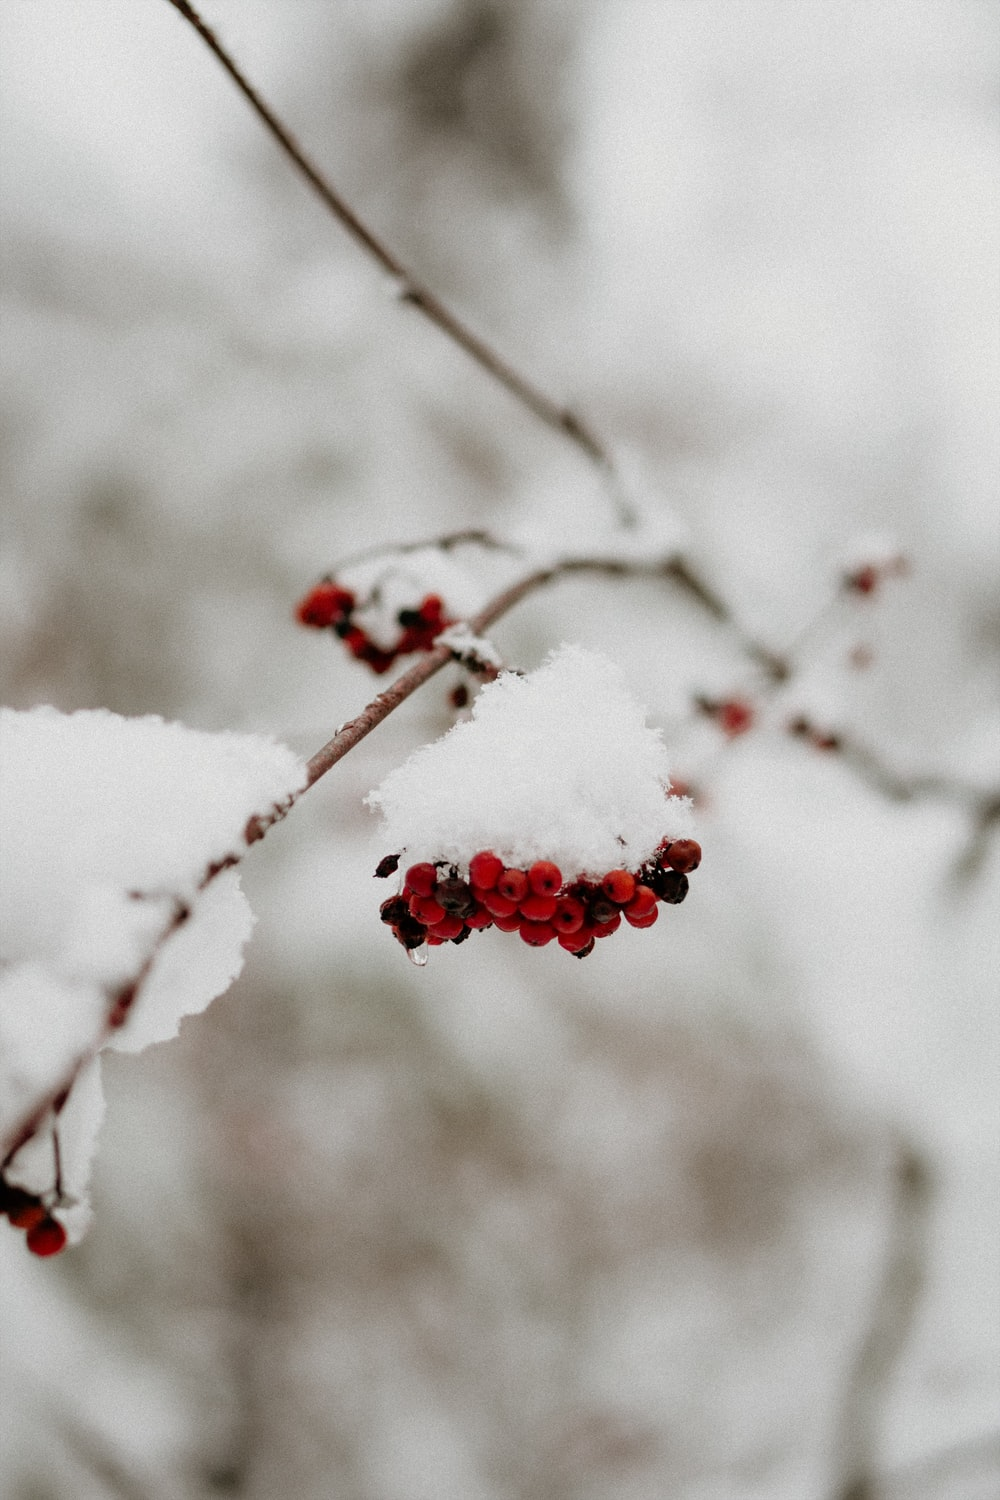 red fruits covered with snow in close-up photography